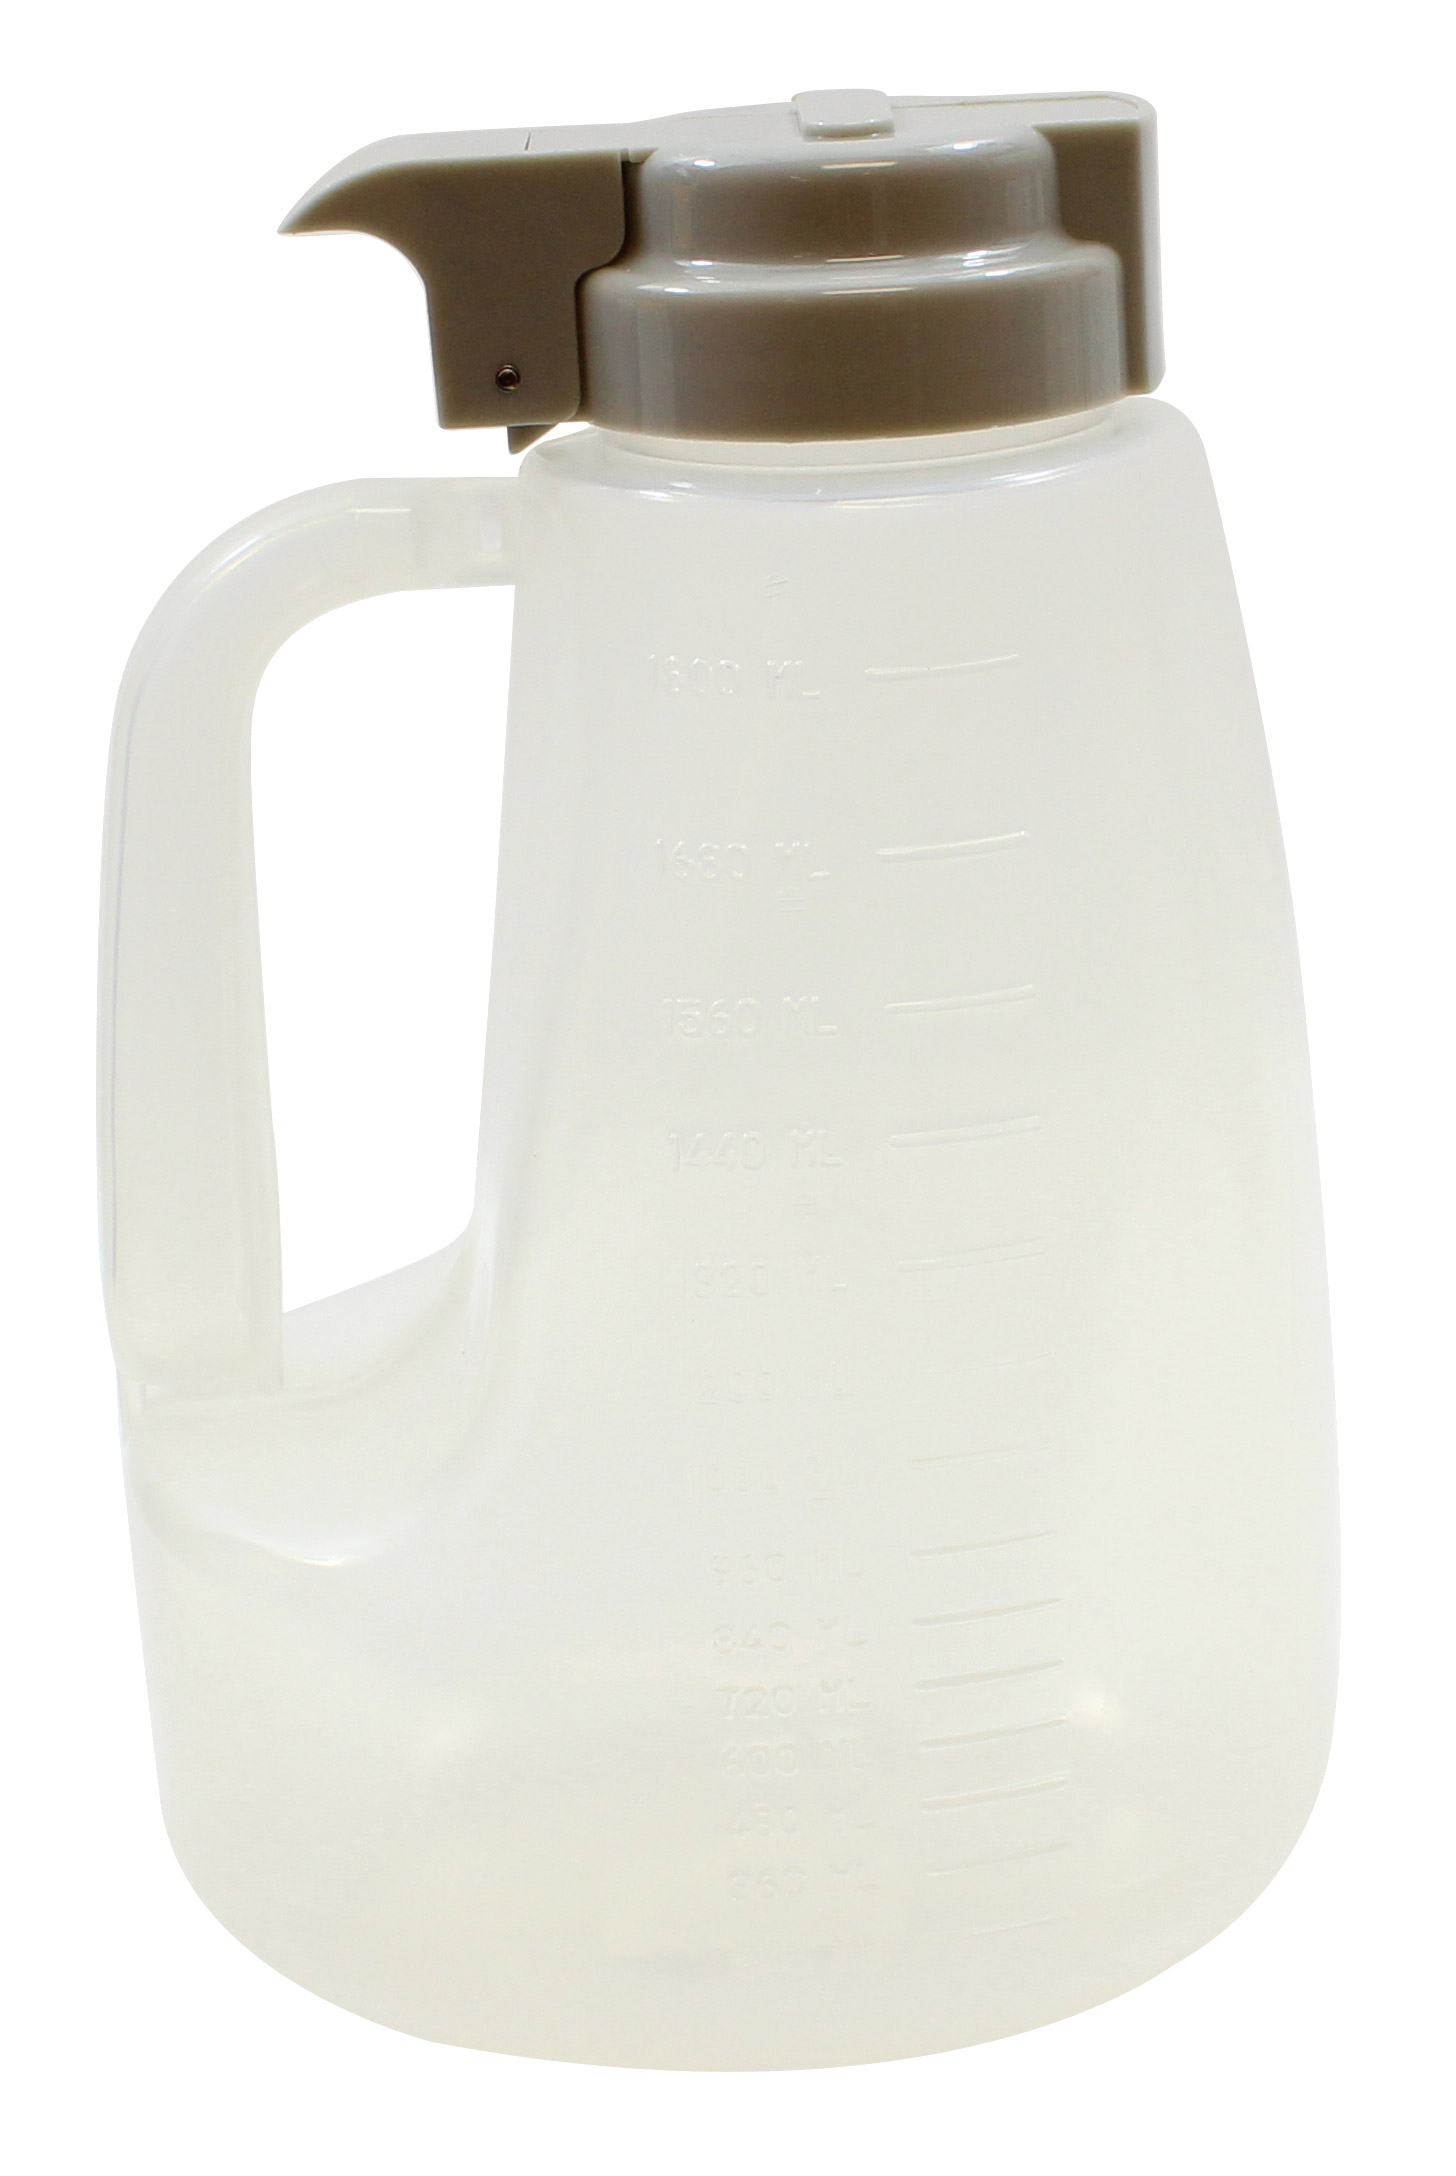 TableCraft Products PP64G syrup pourer